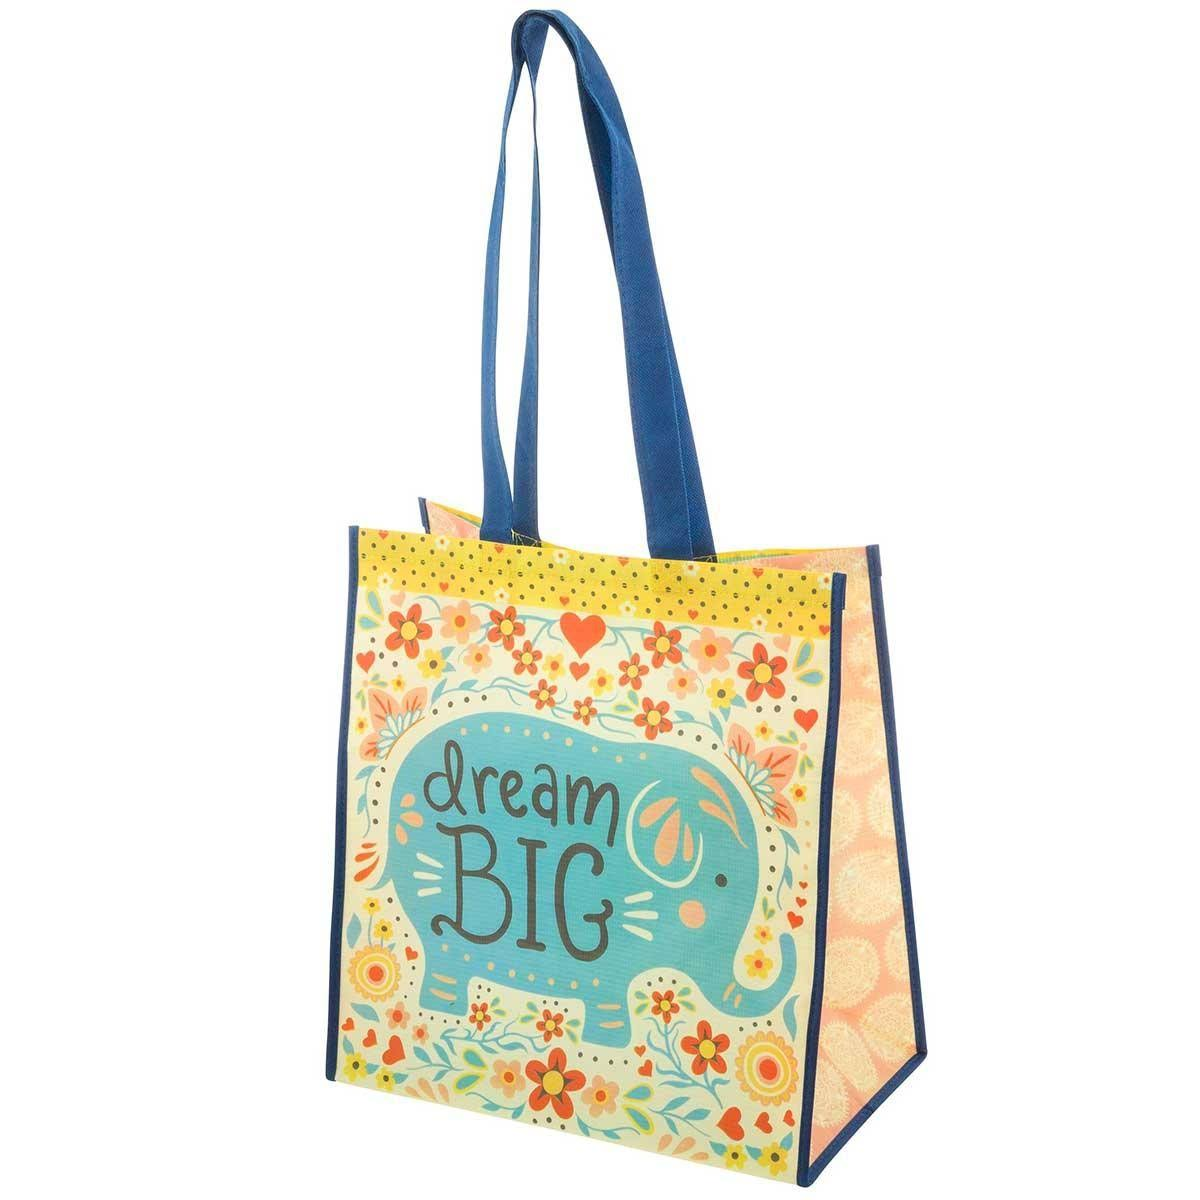 Karma Gifts Large Gift Bag, Dream Big